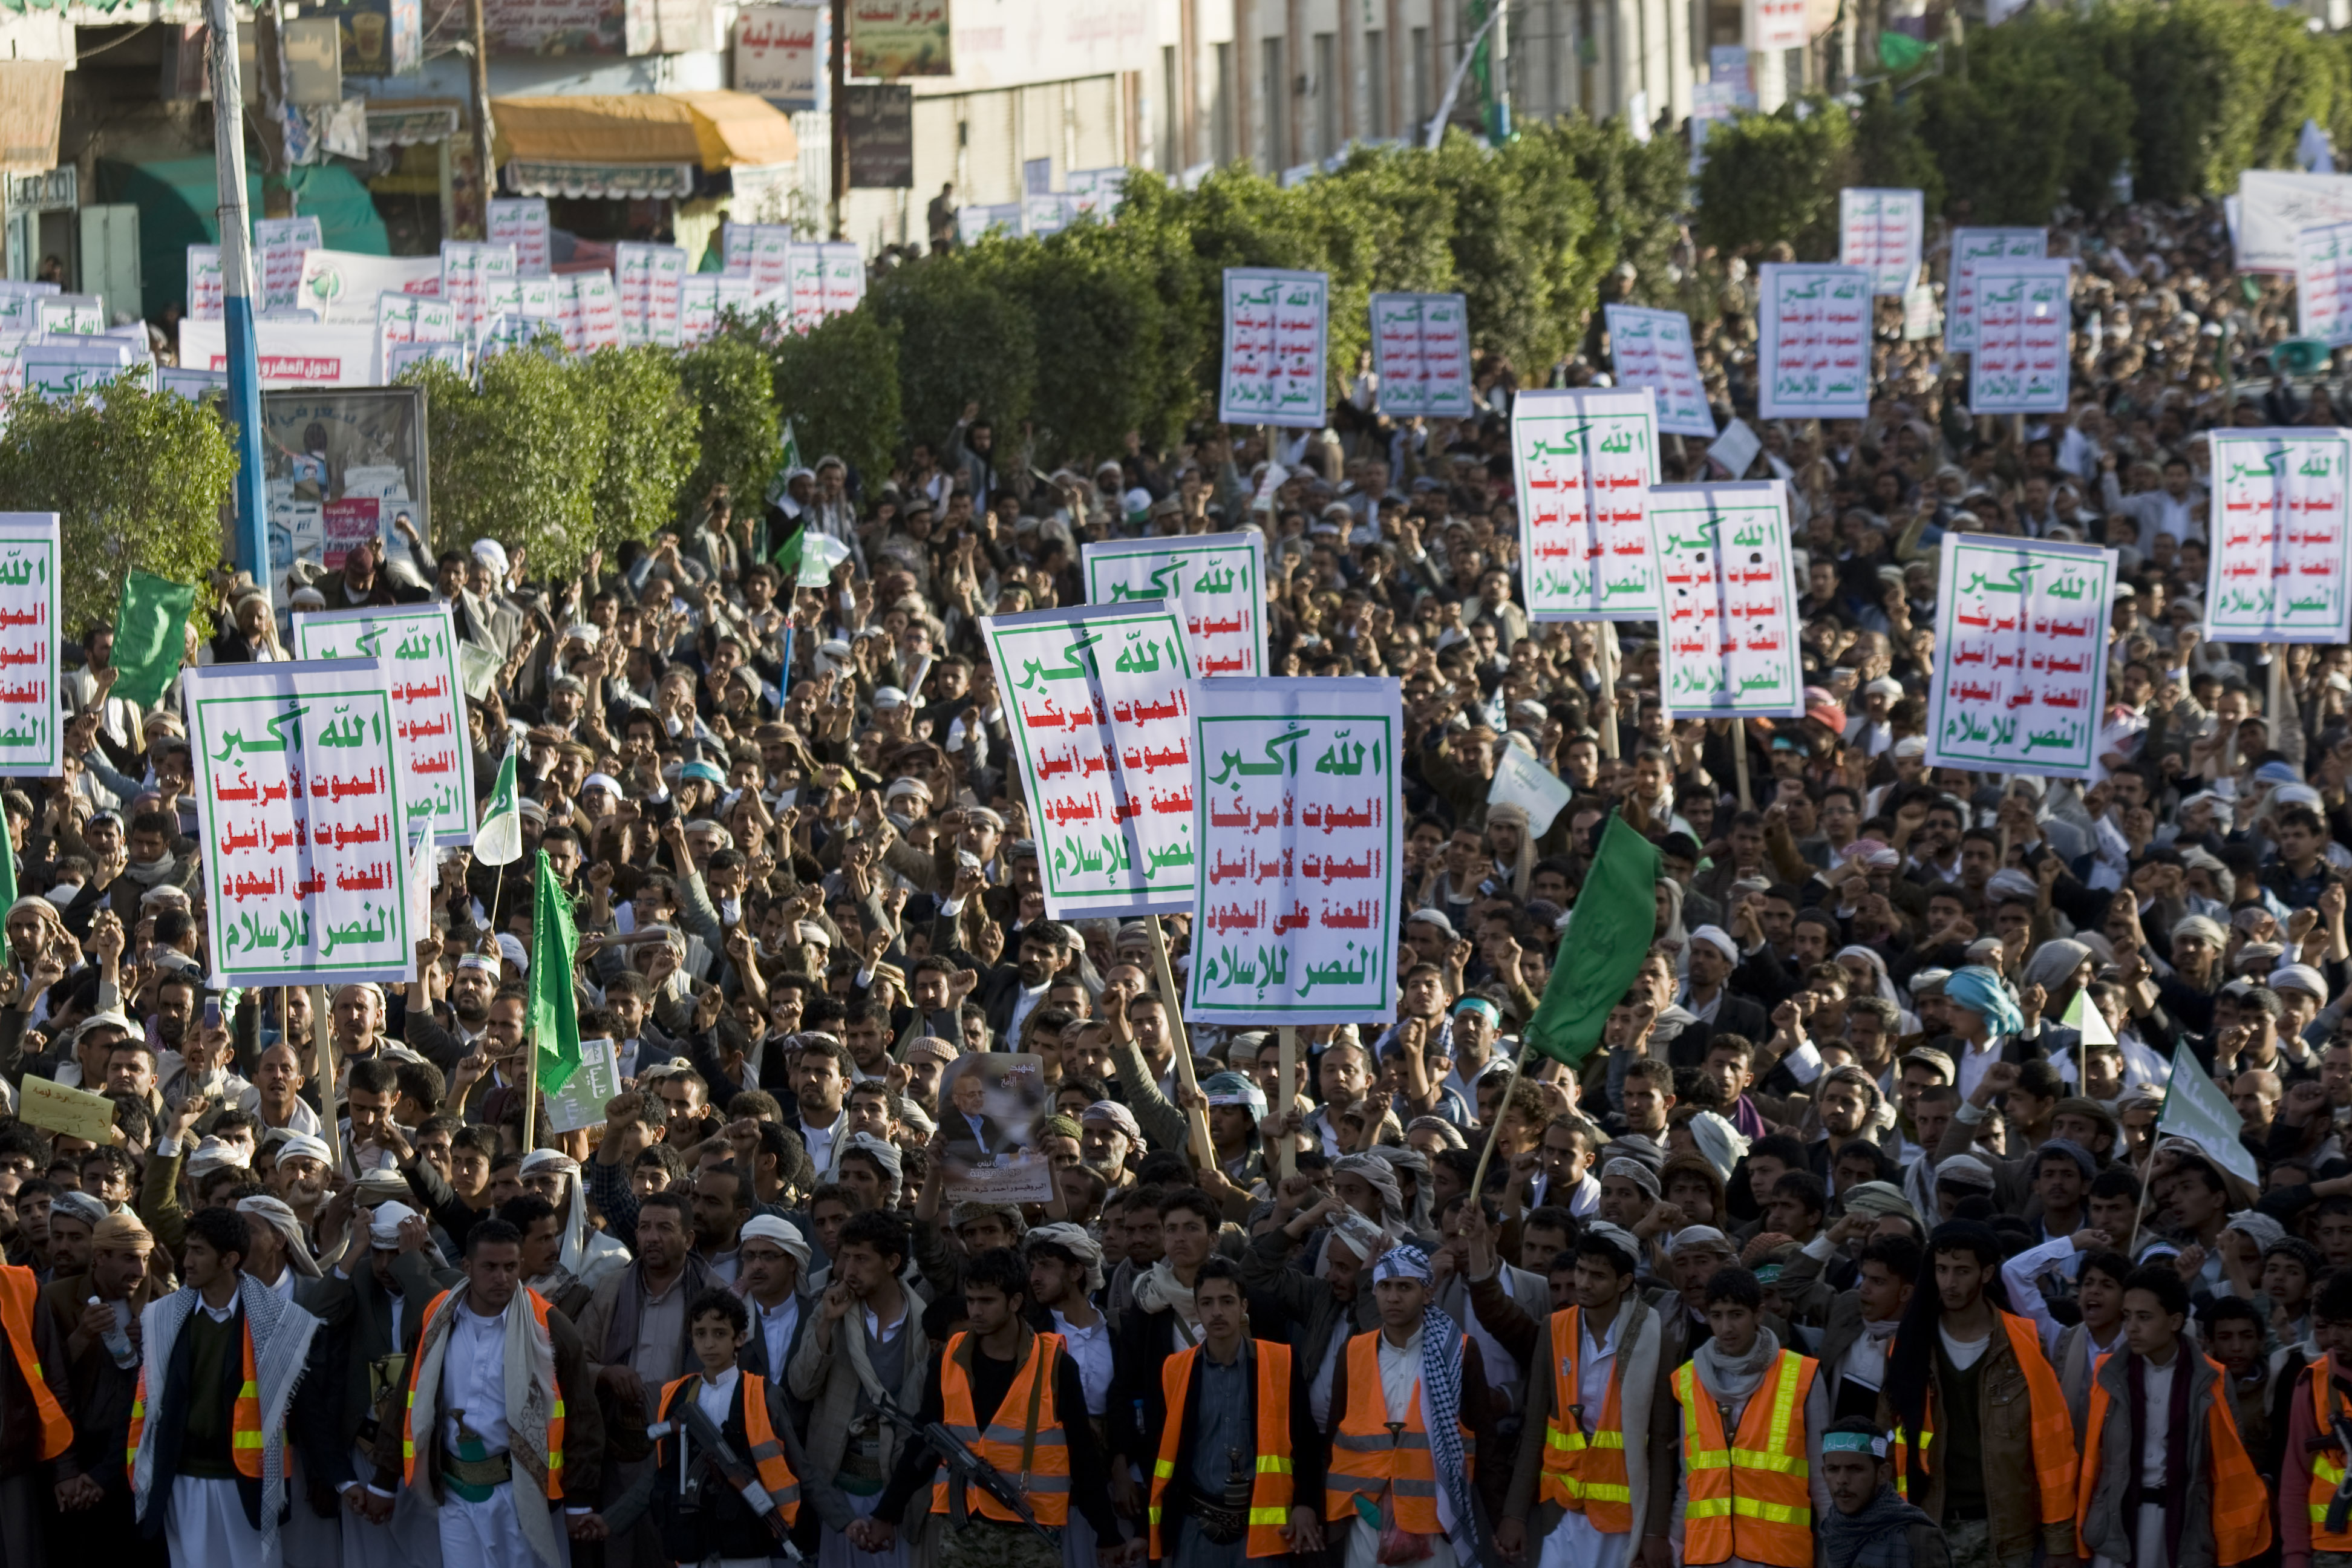 Sanaa - Thousands Stage Anti-Houthi Protests Across Yemen ...